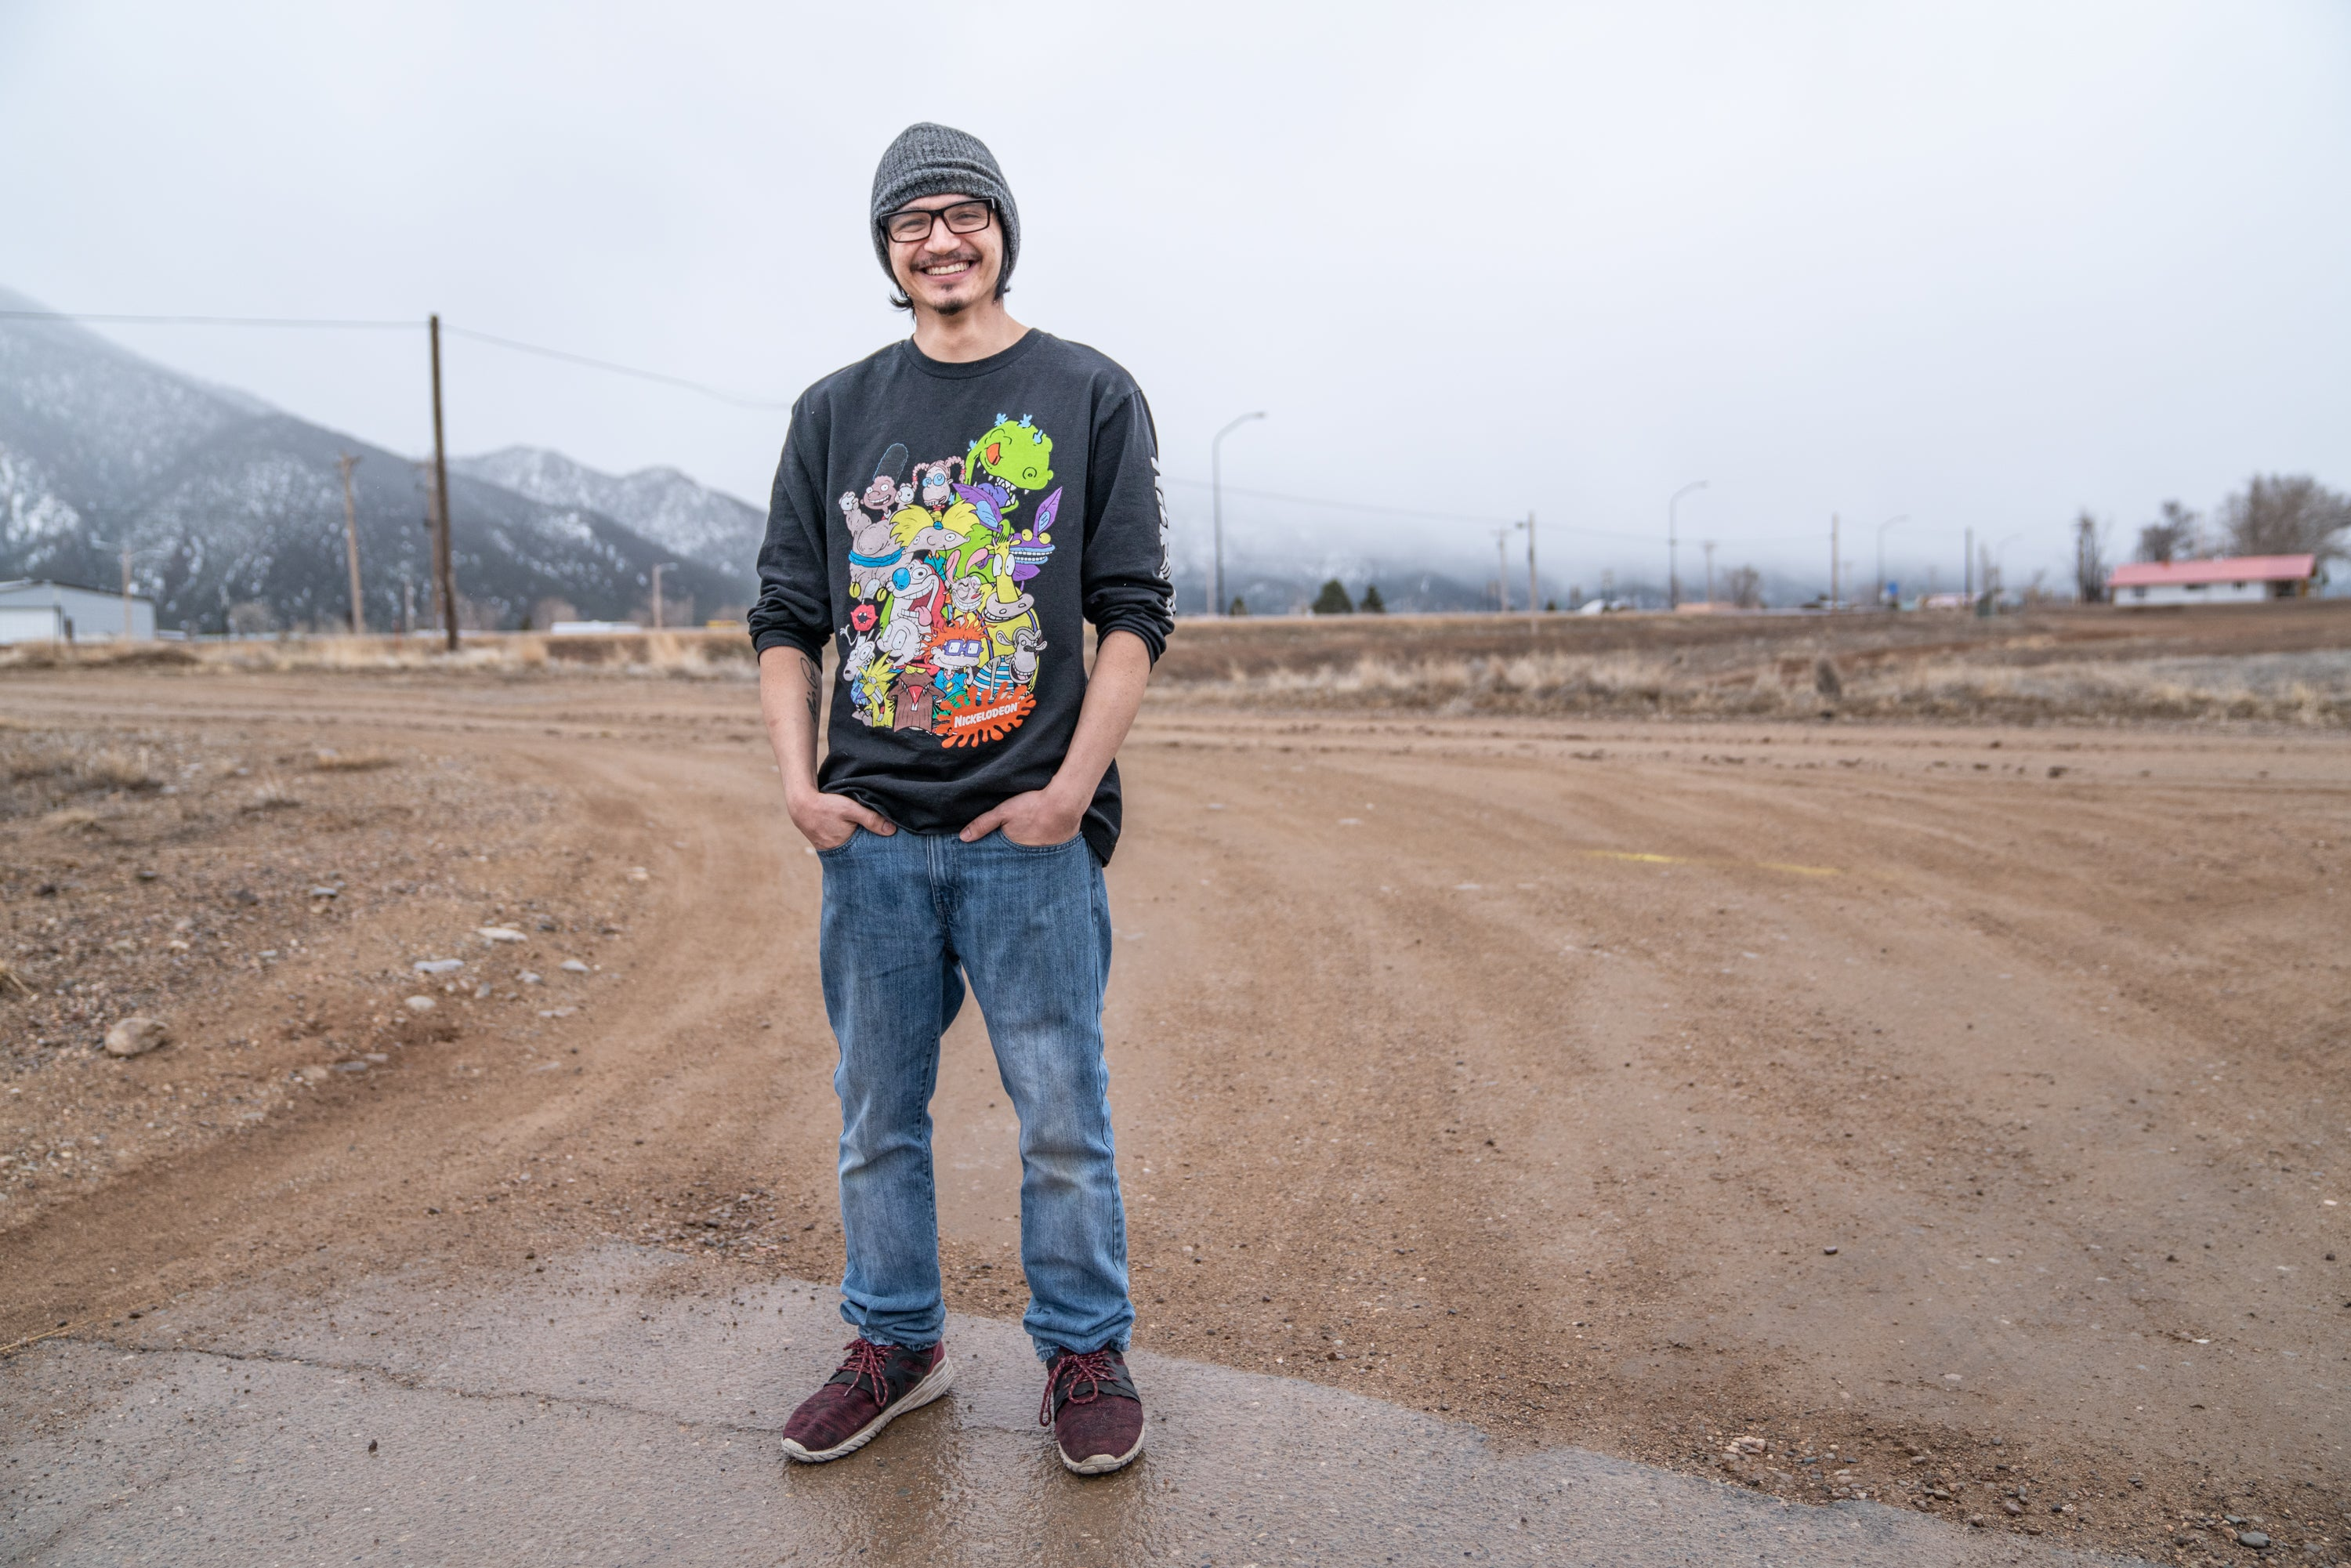 FACES OF TAOS | JEREMY MORRIS